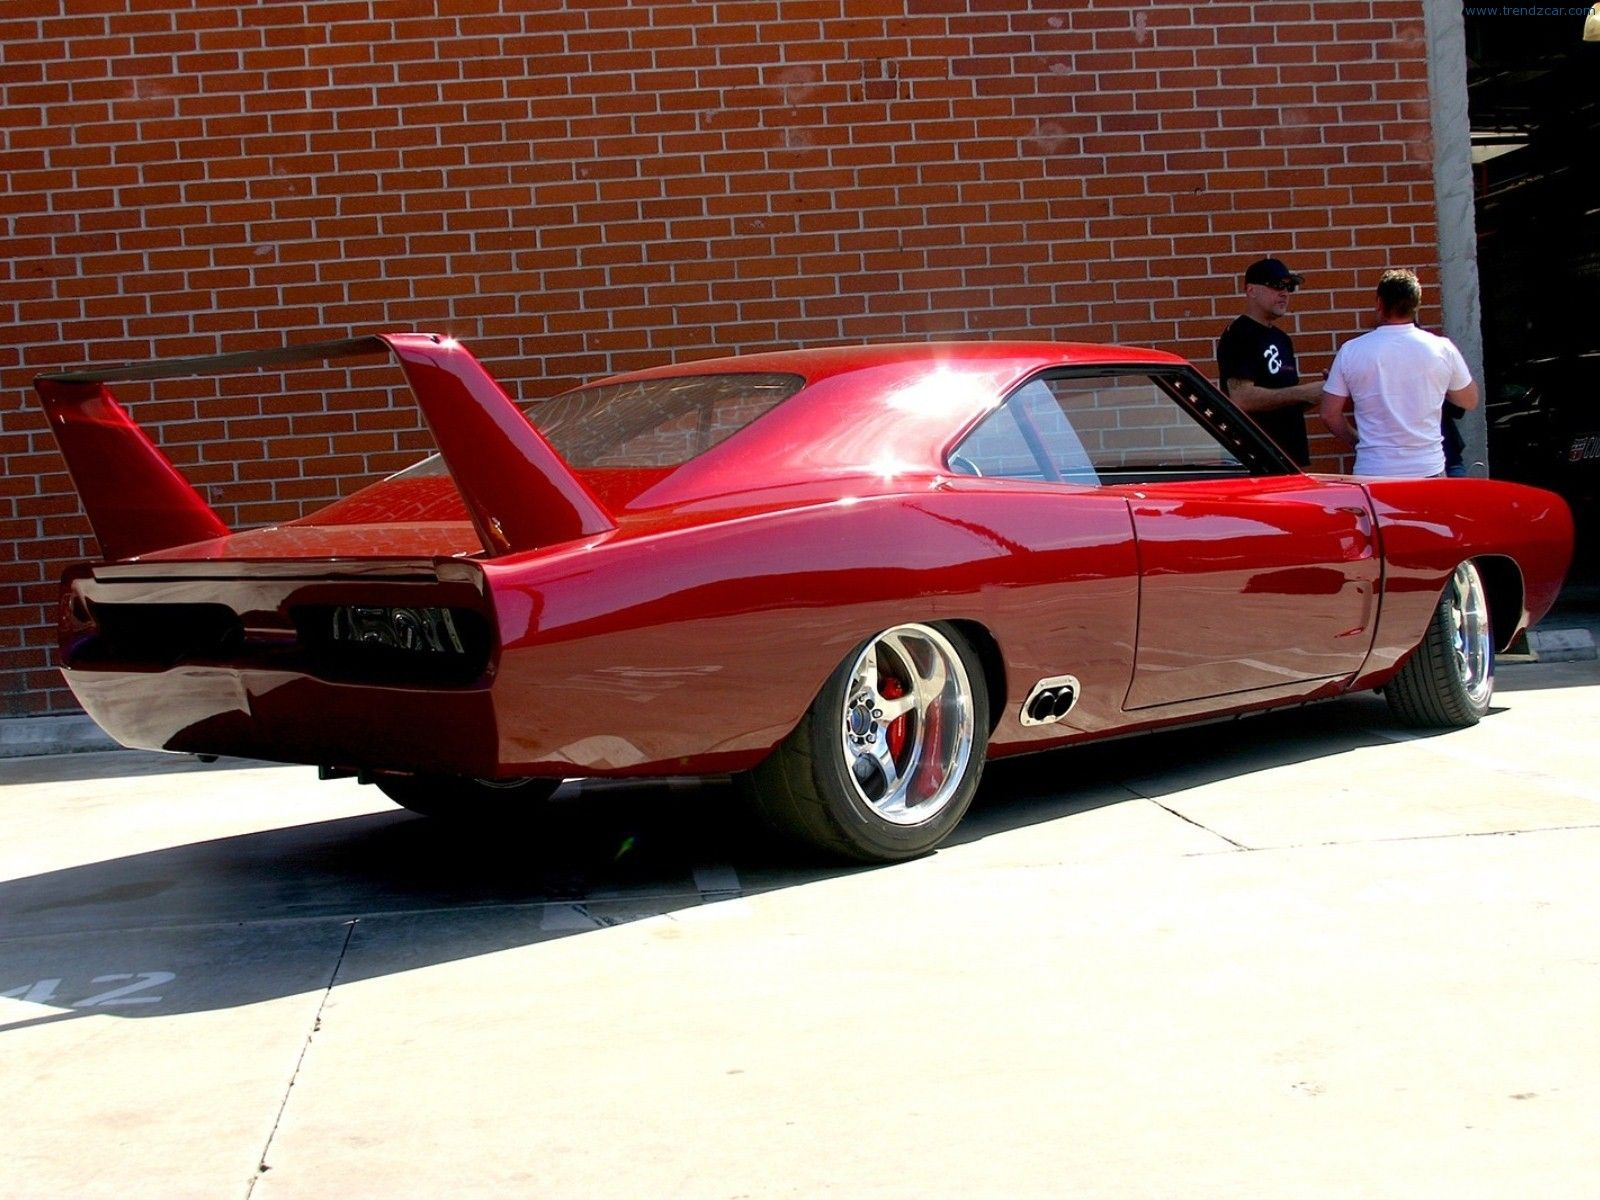 hotrod 68 charger | 1968 Dodge Charger Daytona Fast Furious 6 muscle classic hot rod rods ...